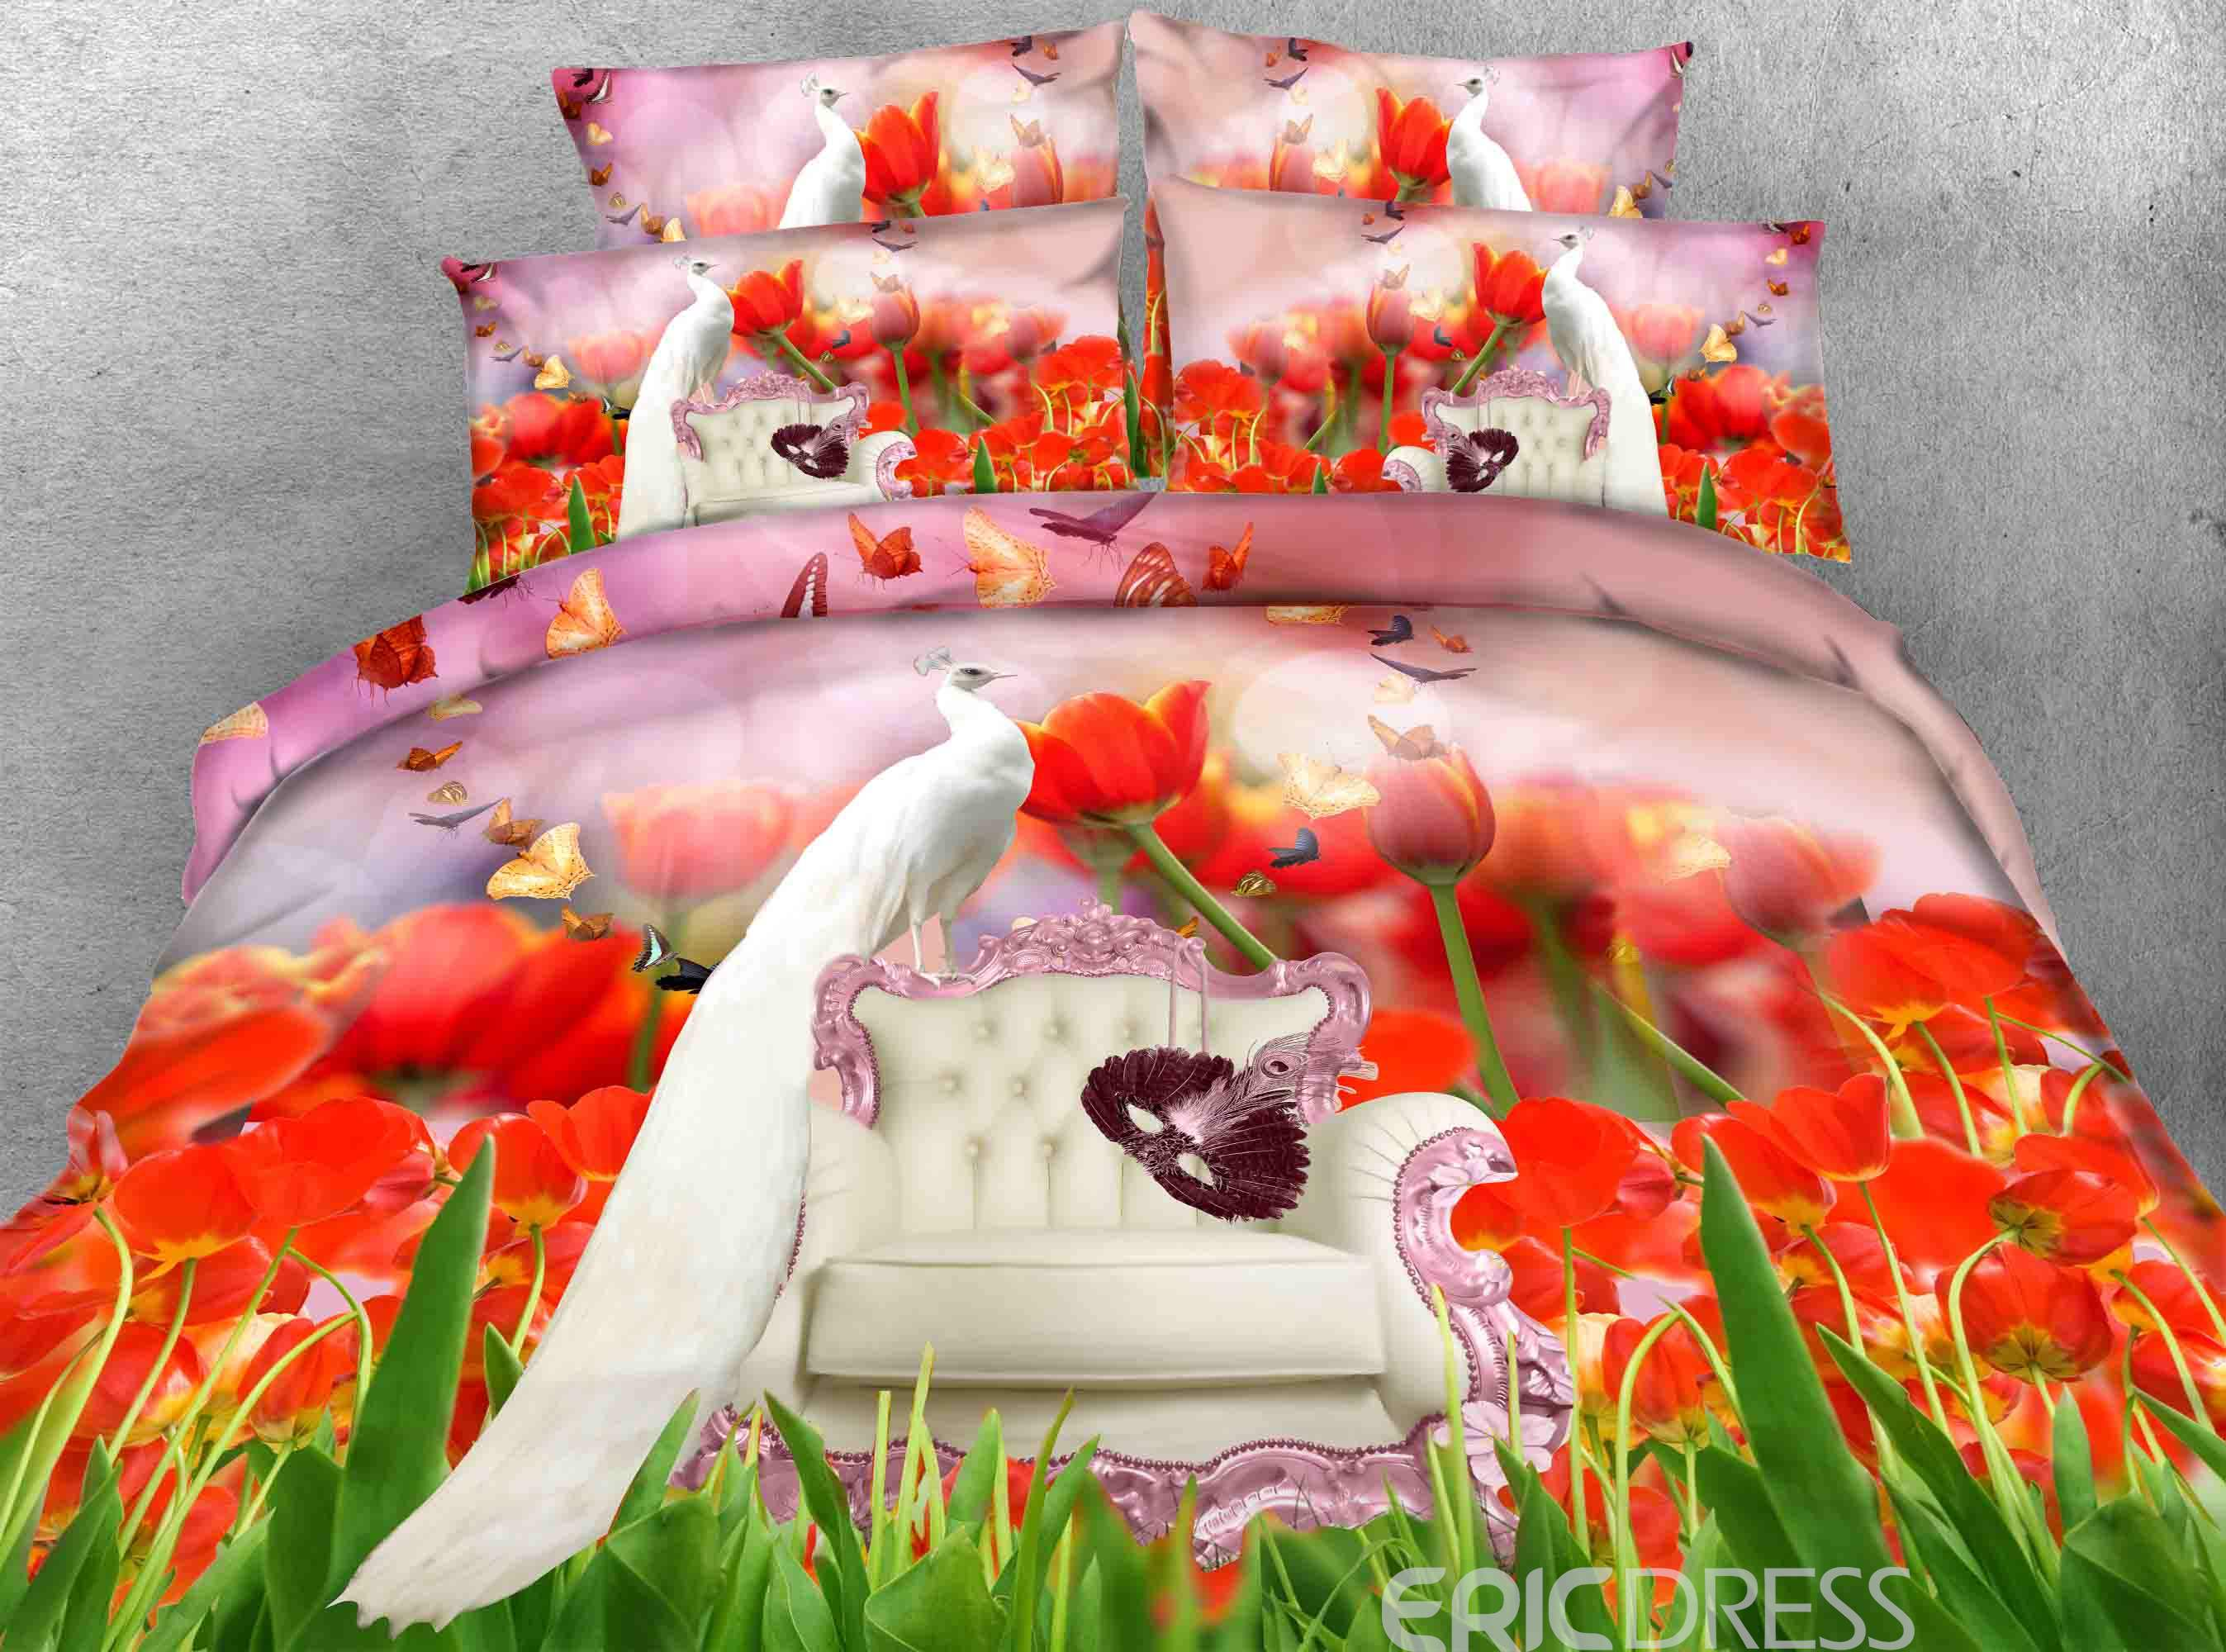 White Peacock and Red Tulips Printed Cotton 3D 4-Piece Bedding Sets/Duvet Covers